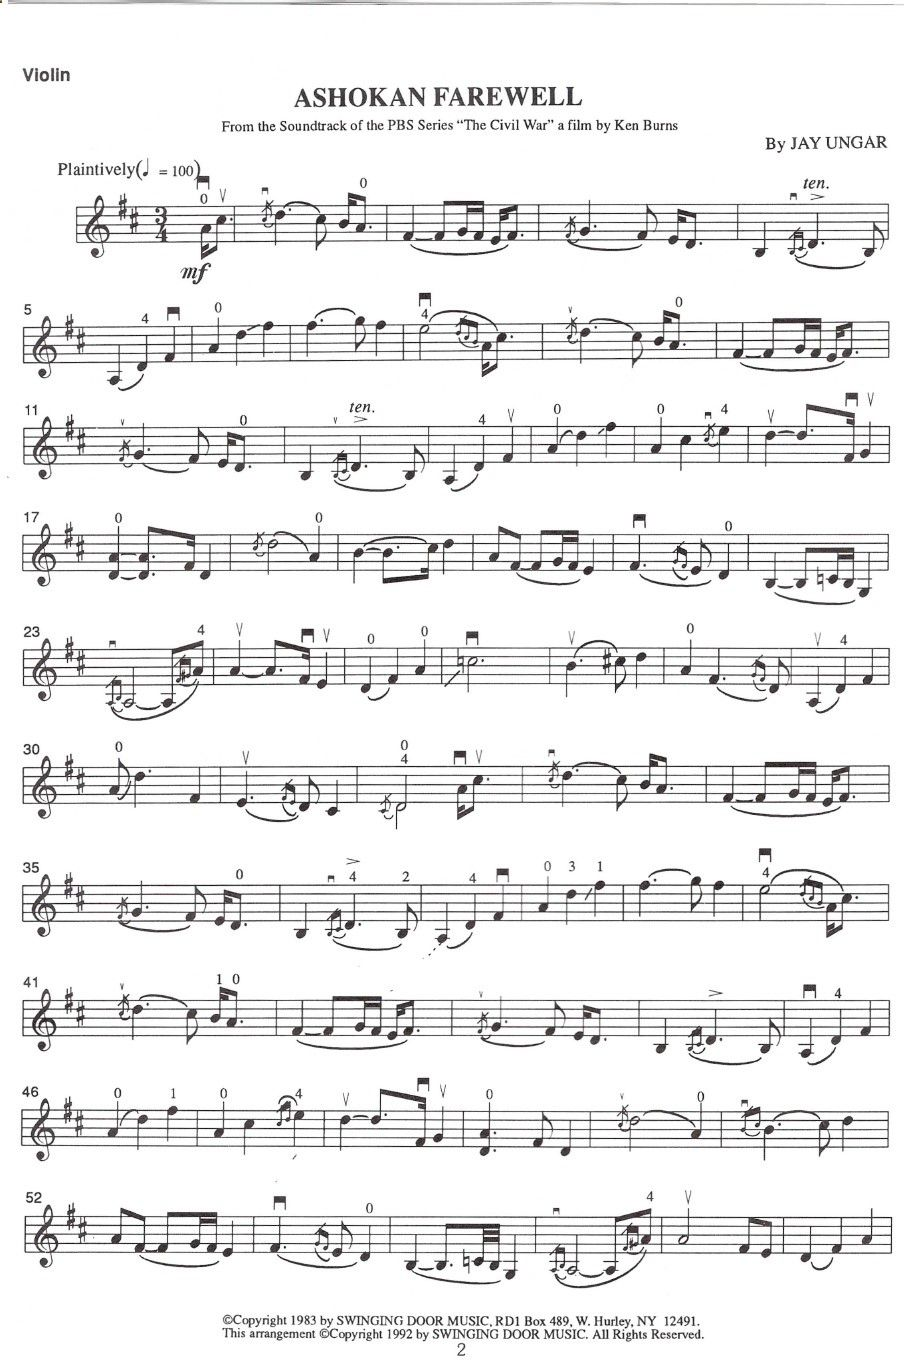 Very Slow But Really Lovely Ashokan Farewell By Jay Ungar Its Familiar If Youve Seen The Ken Bur Violin Sheet Music Ashokan Farewell Sheet Music Sheet Music